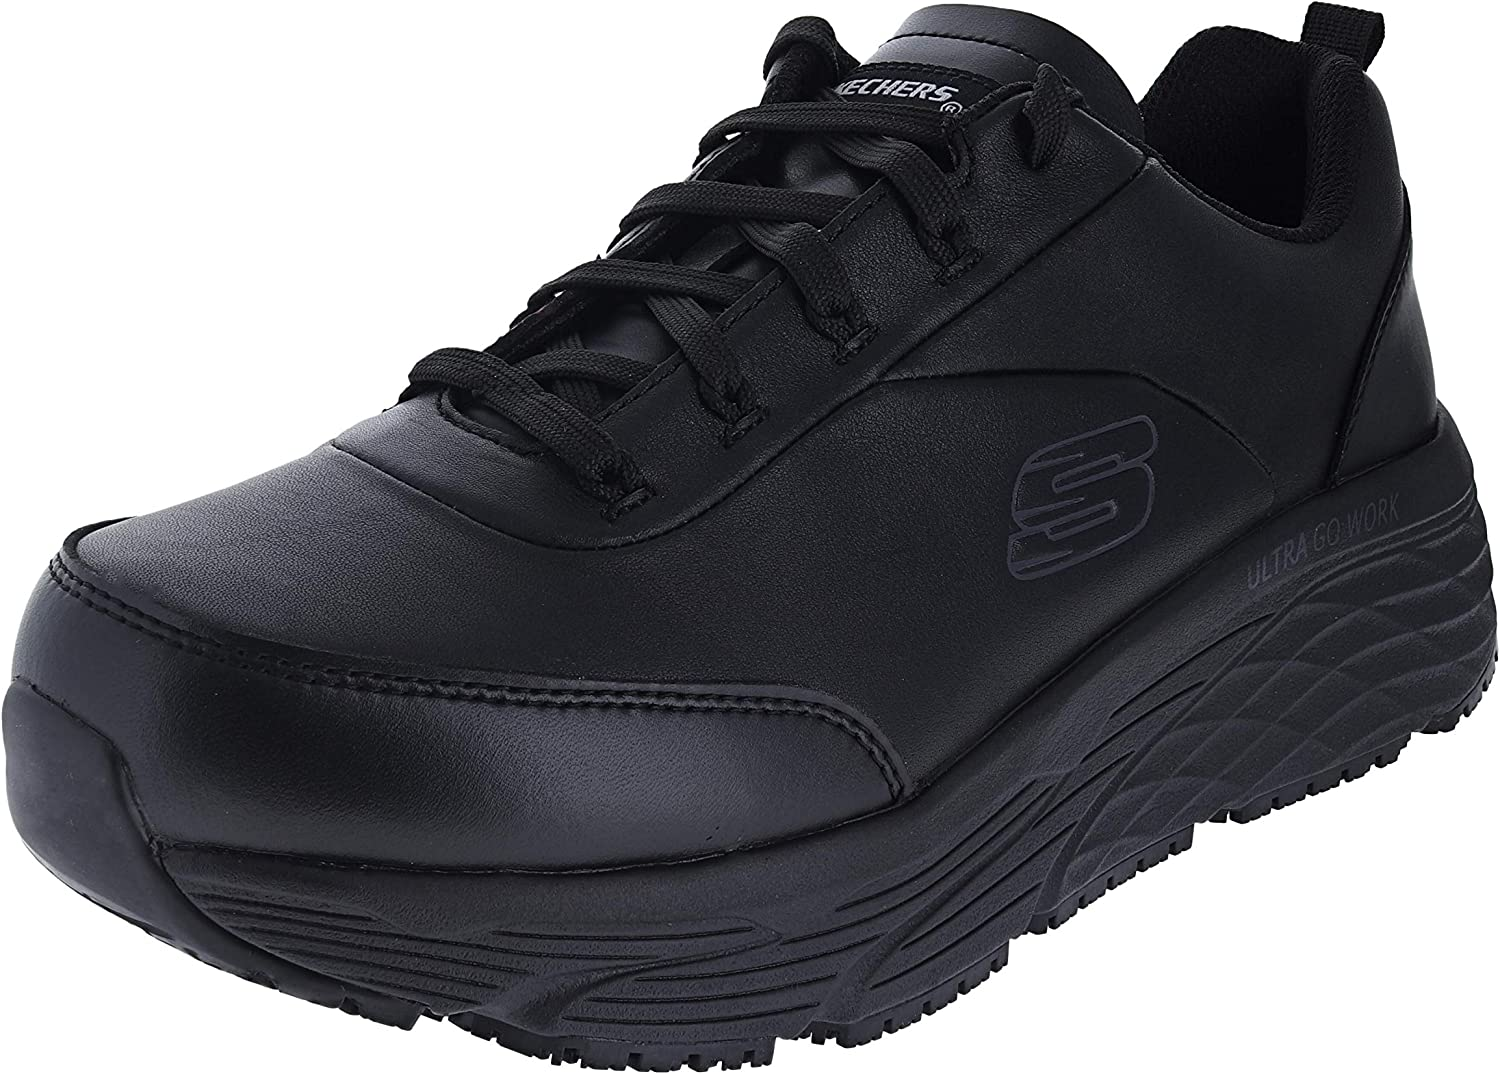 Skechers Men's Work Relaxed Fit Max